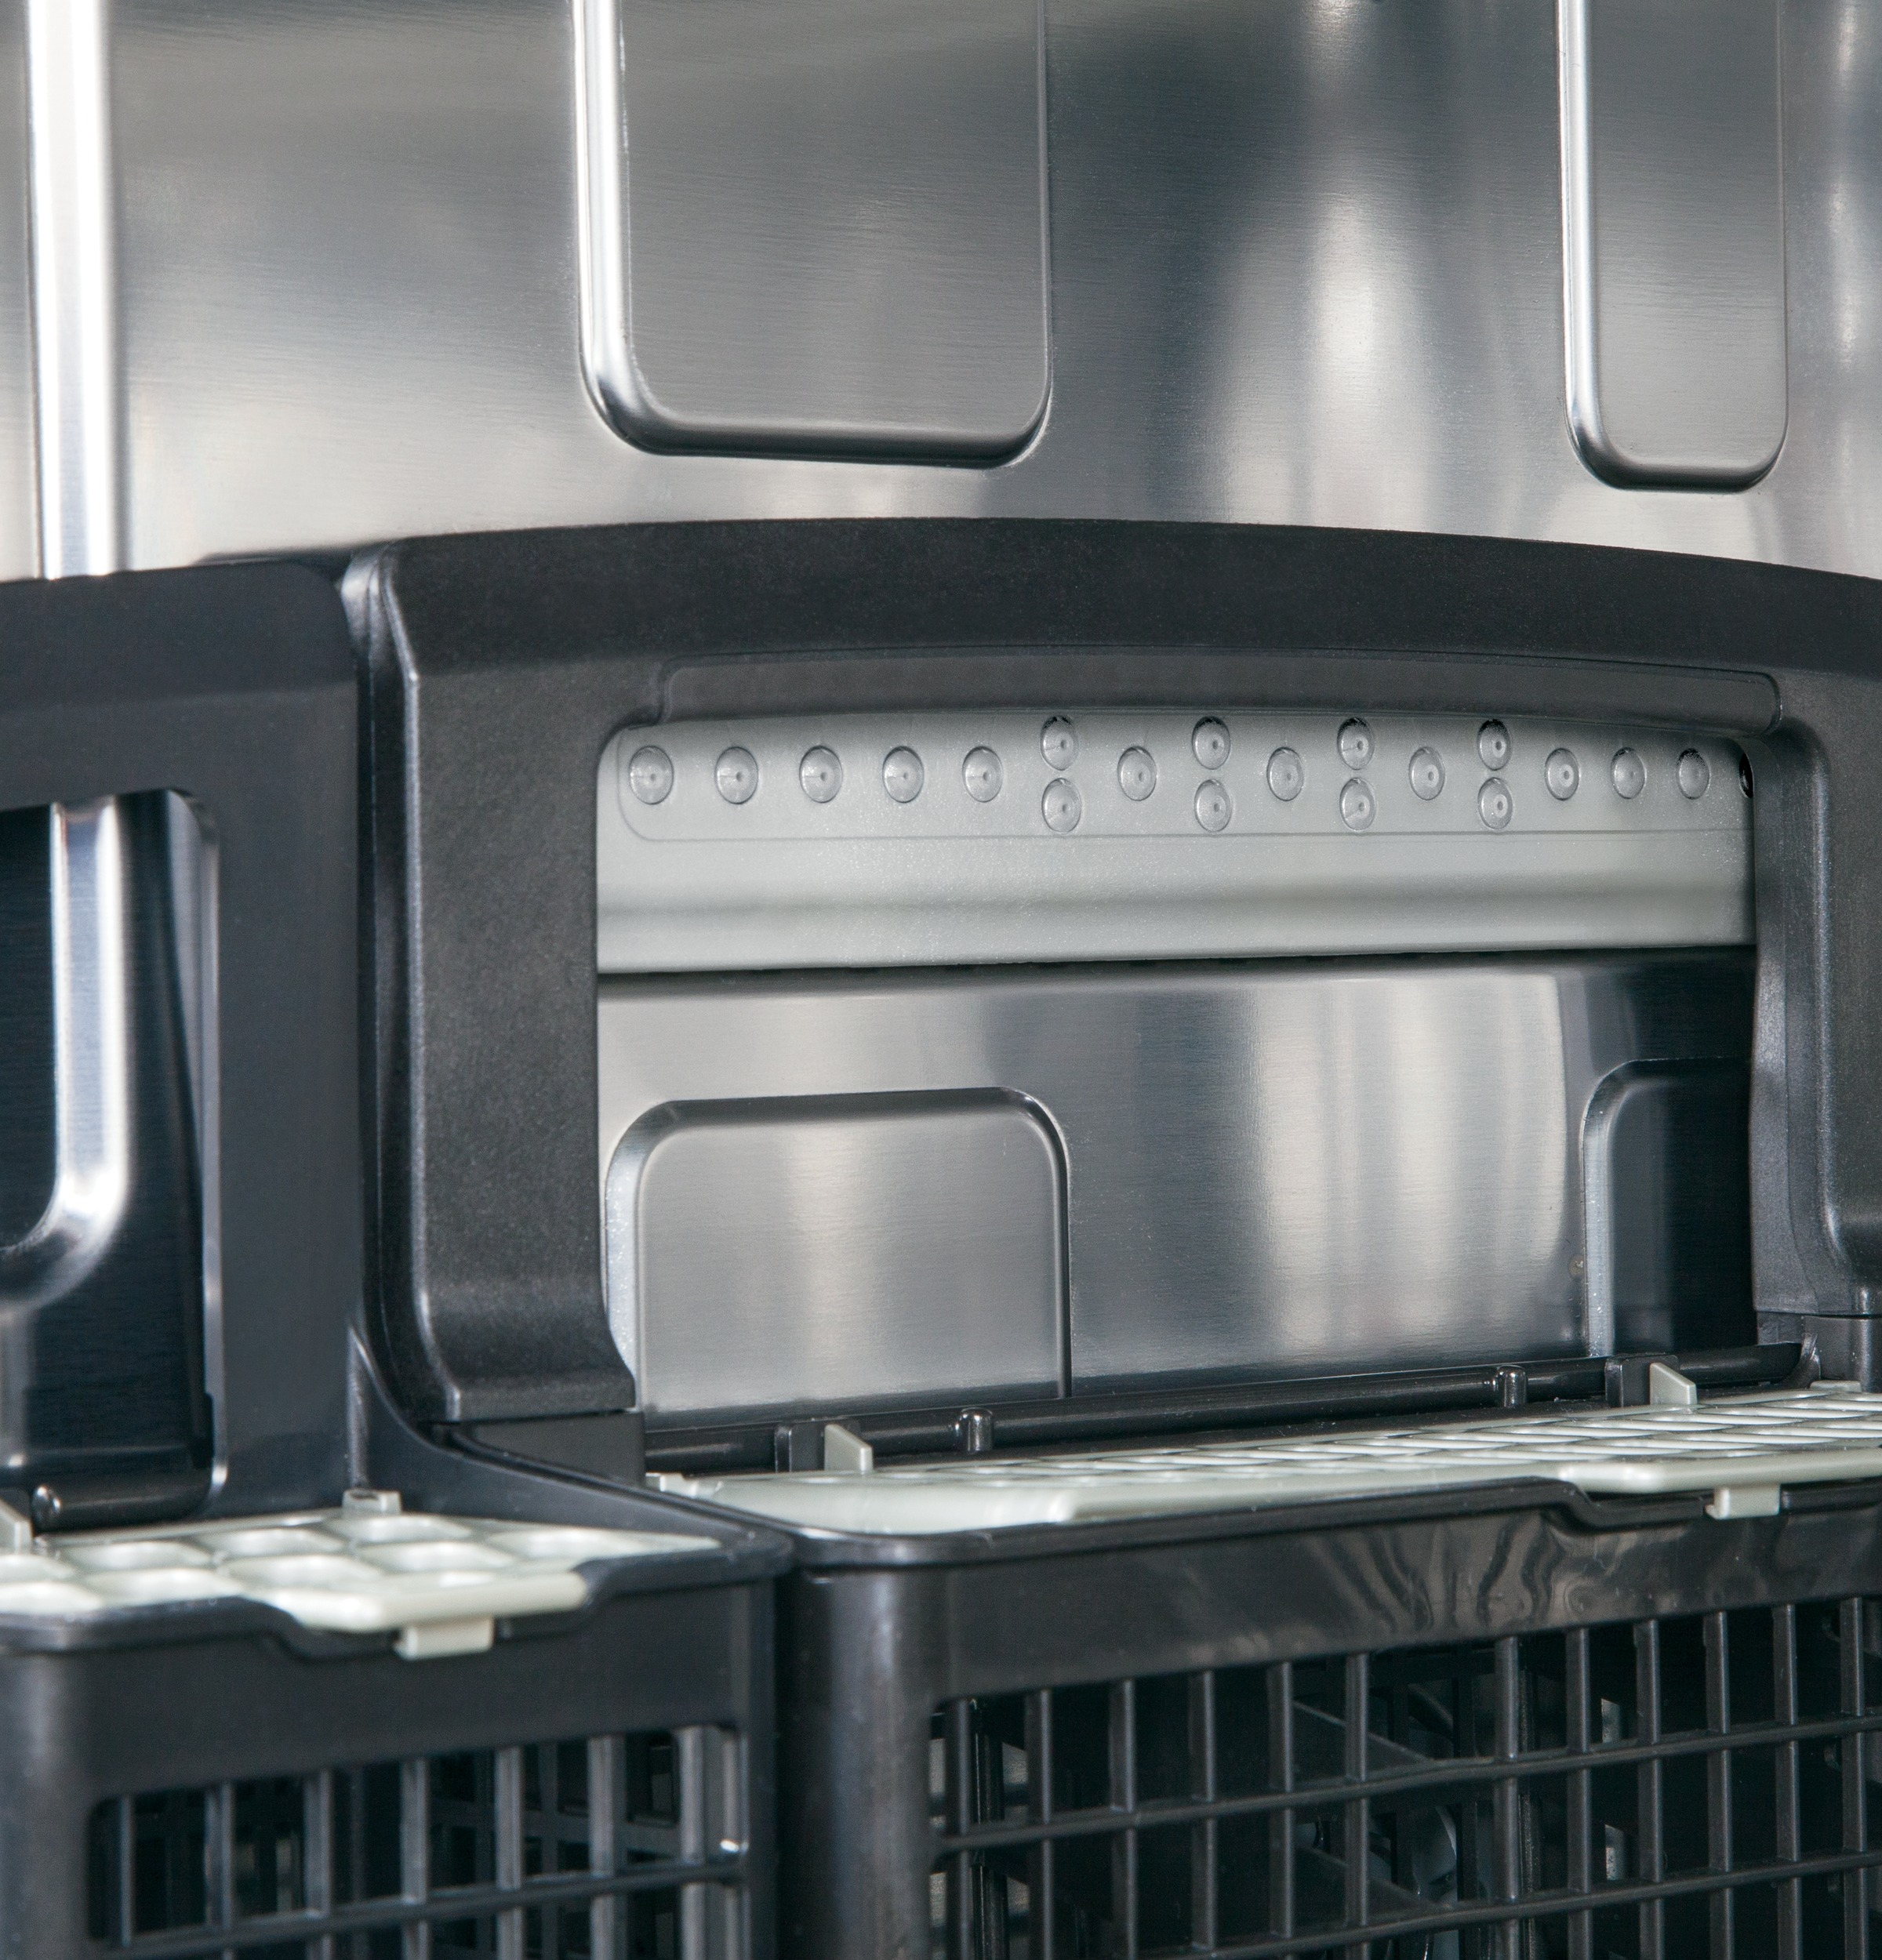 Model: PDT855SFLDS | GE Profile GE Profile™ Stainless Steel Interior Dishwasher with Hidden Controls